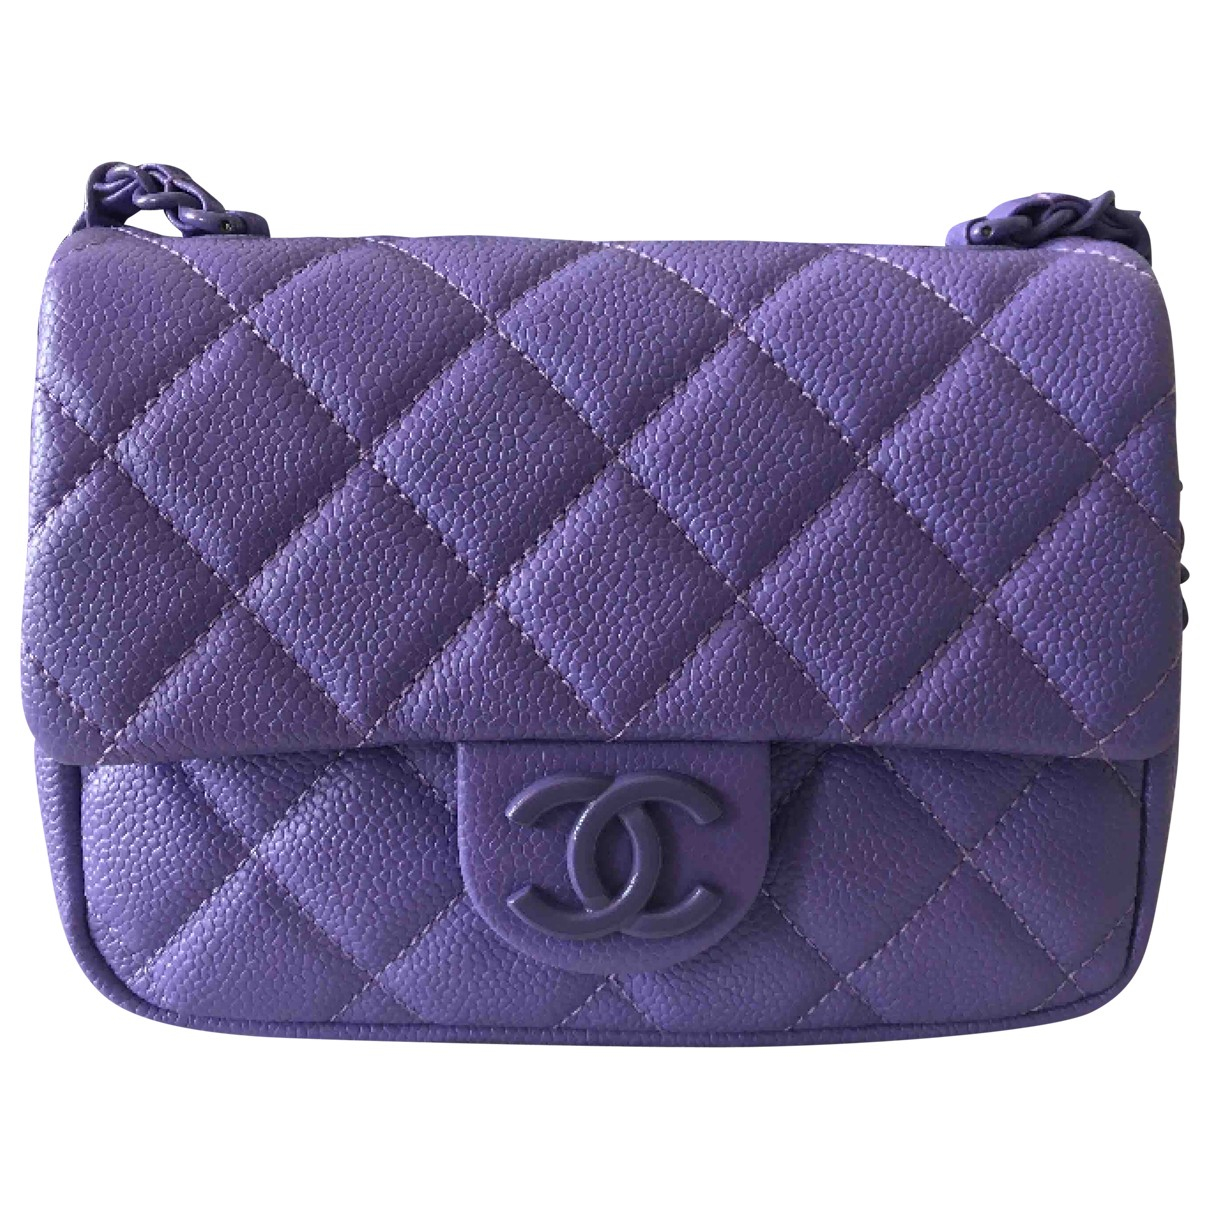 Chanel Timeless/Classique Purple Leather handbag for Women \N